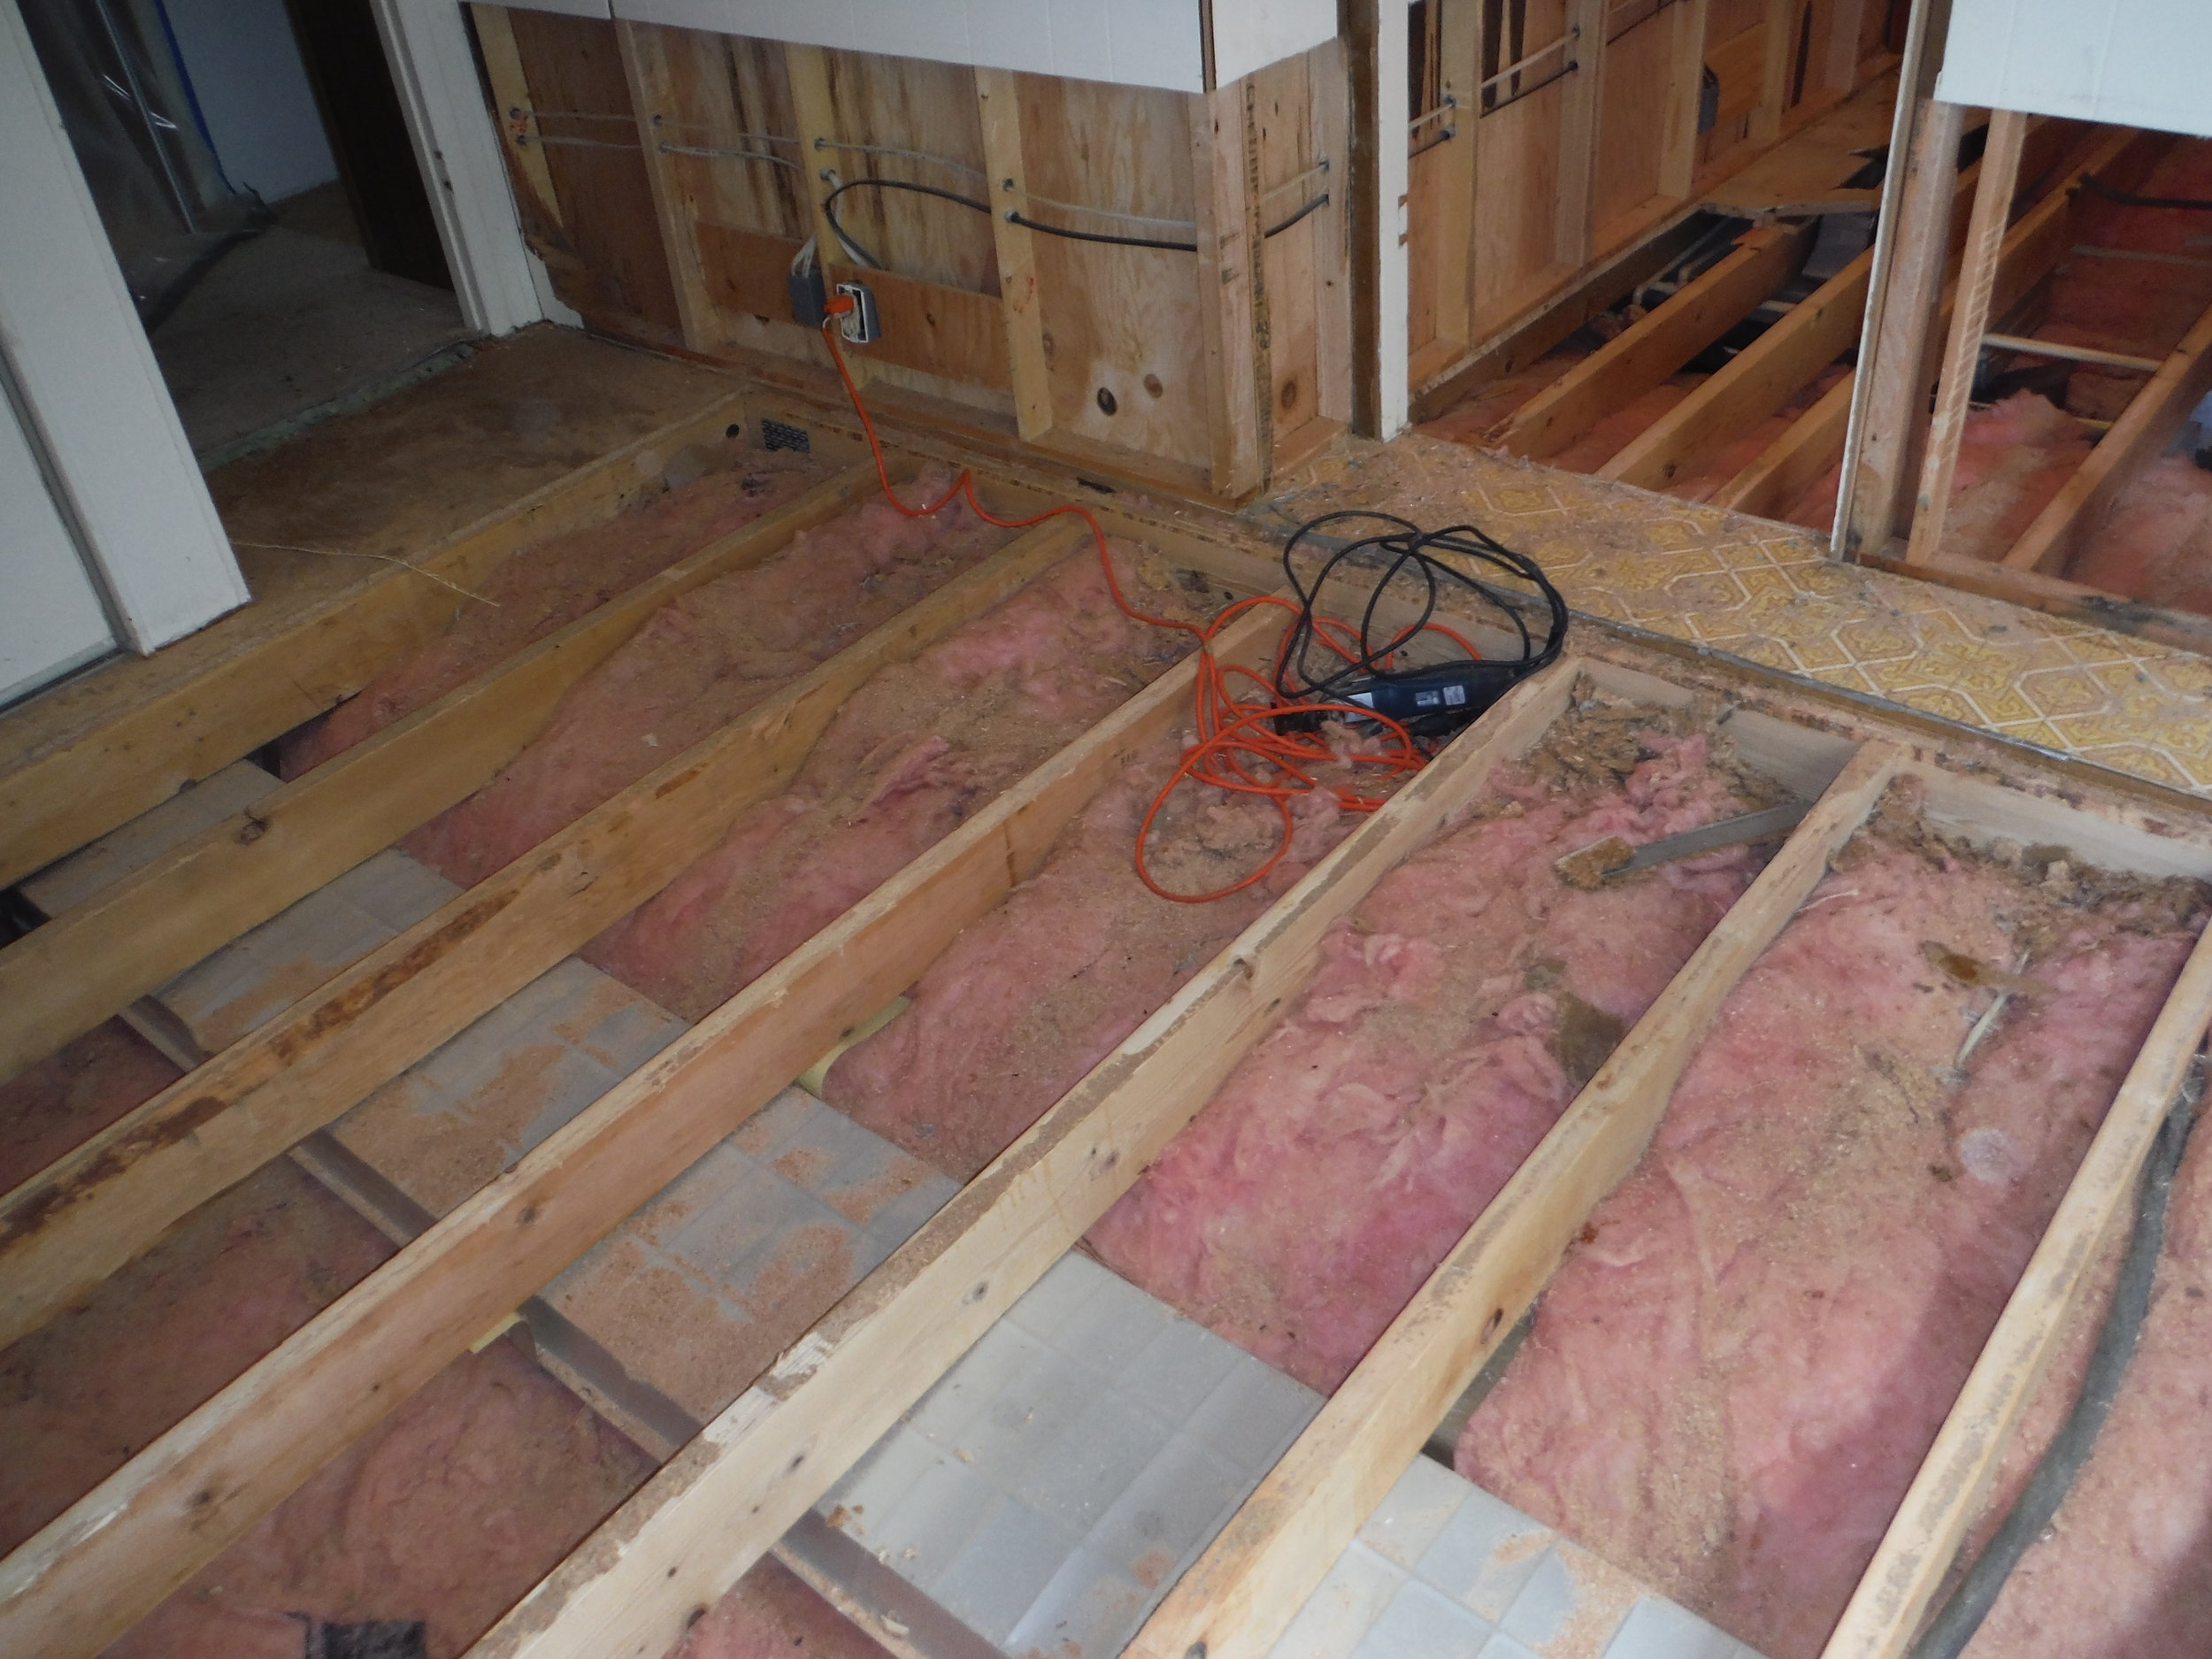 Removal of damaged subfloor and wet insulation